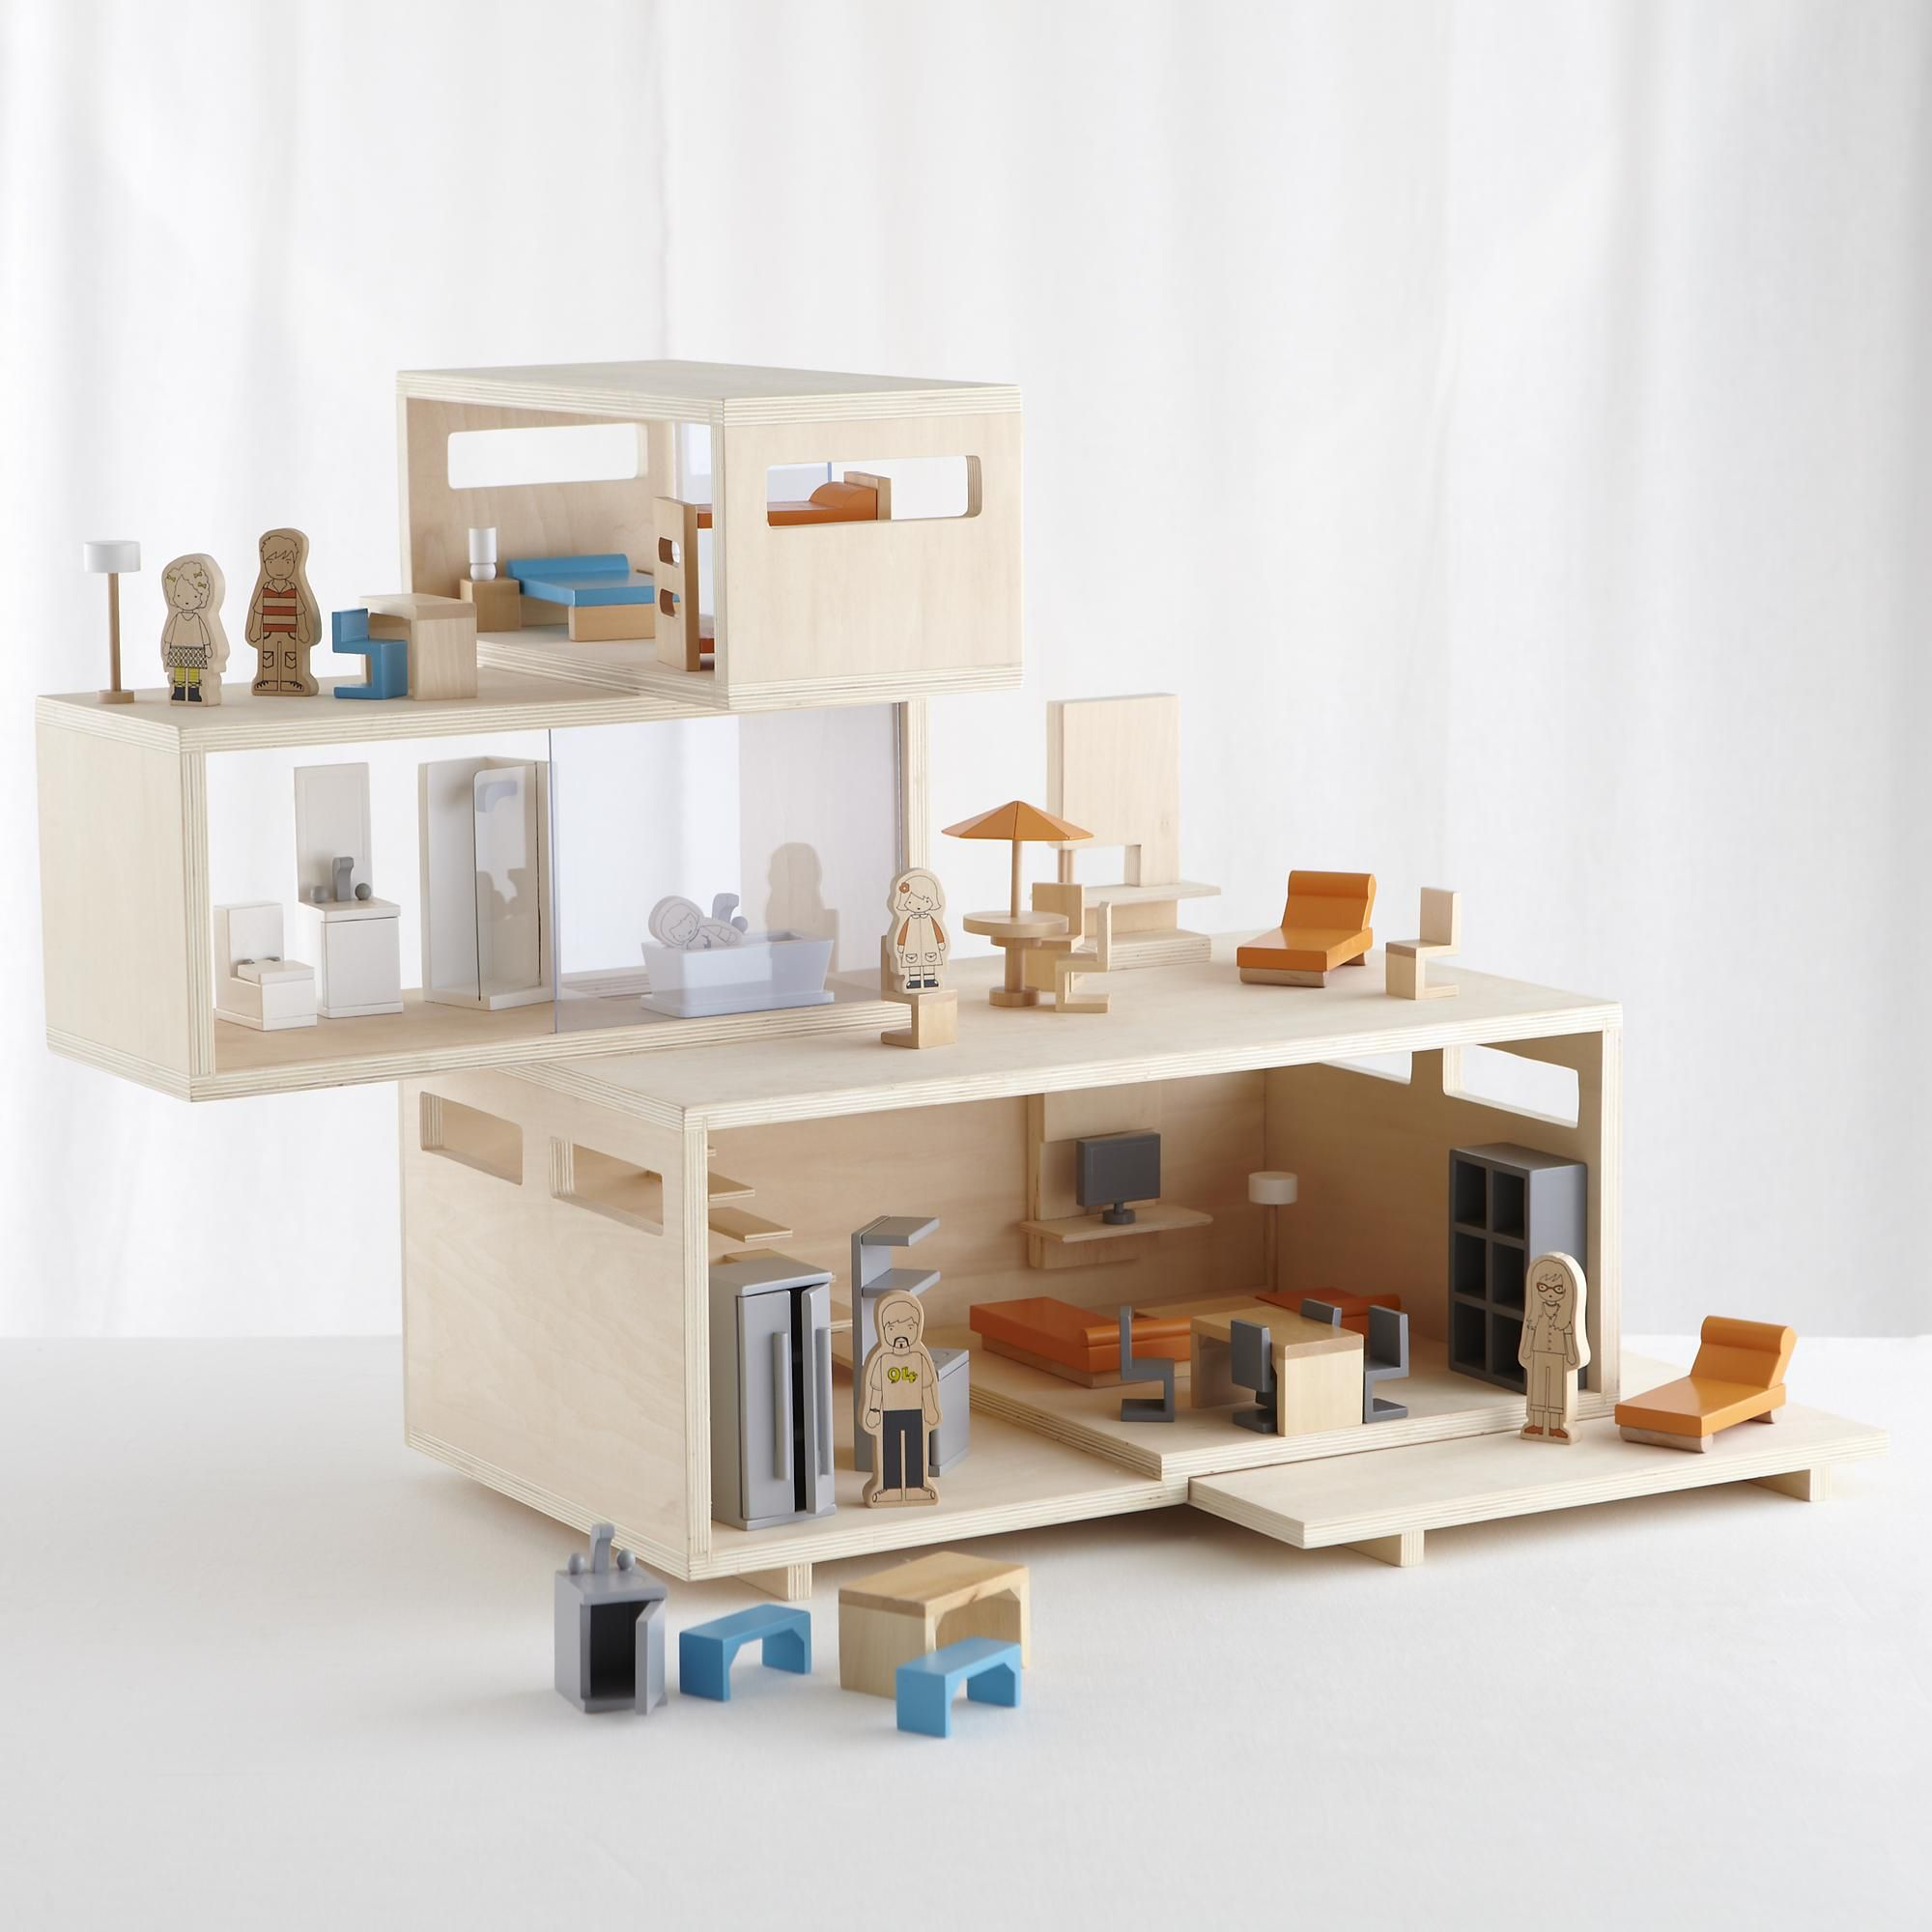 modern dollhouse furniture sets. The Land Of Nod: Modern Dollhouse And Furniture Set. $$$$. Sets D